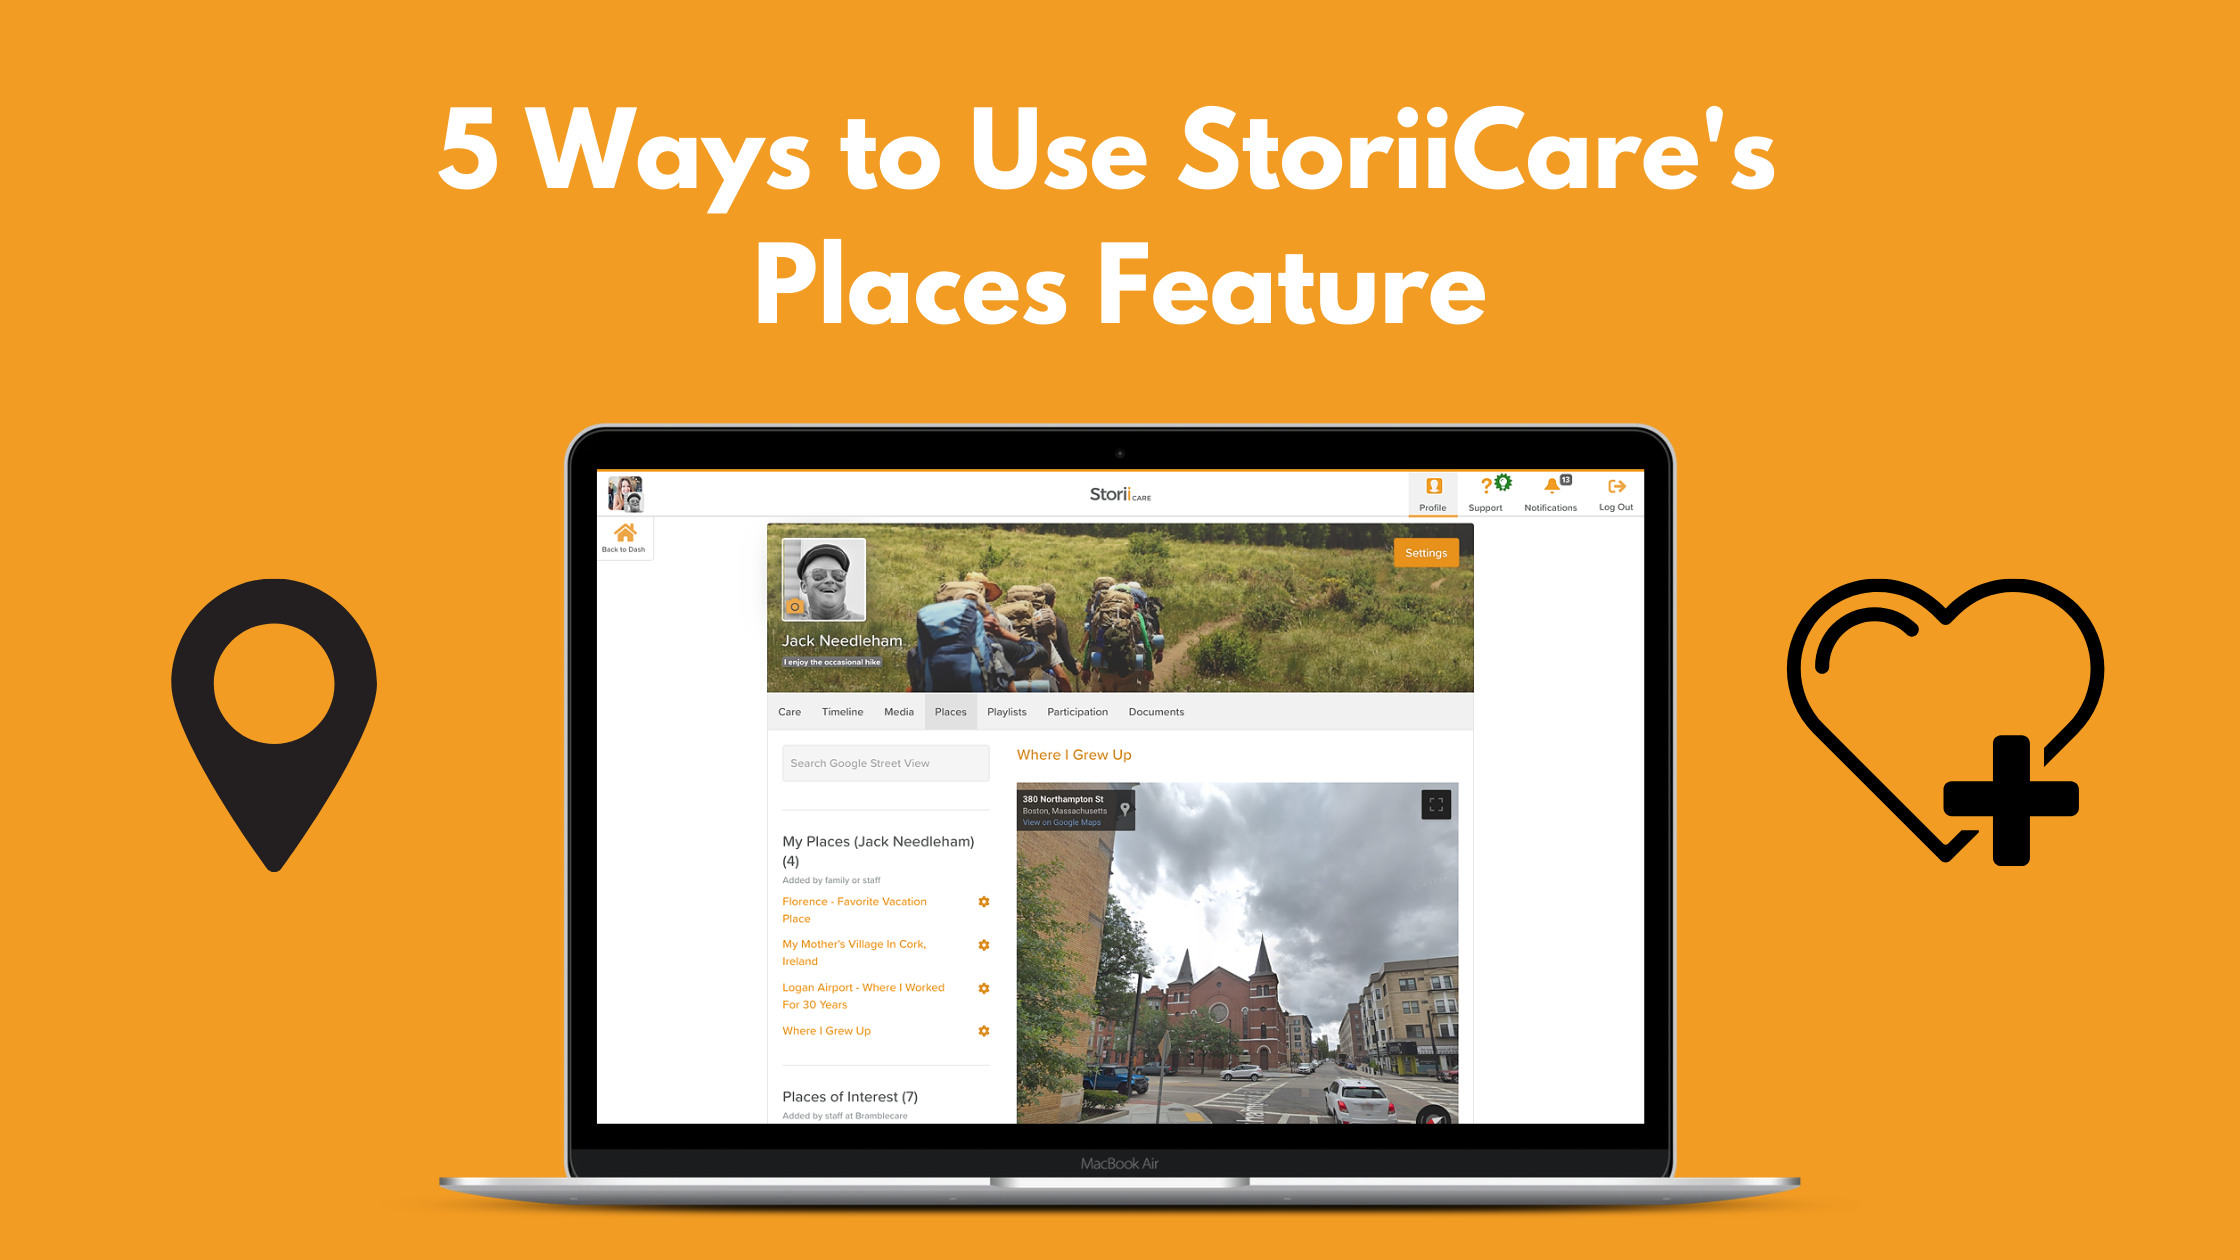 5 Ways to Use StoriiCare's Places Feature